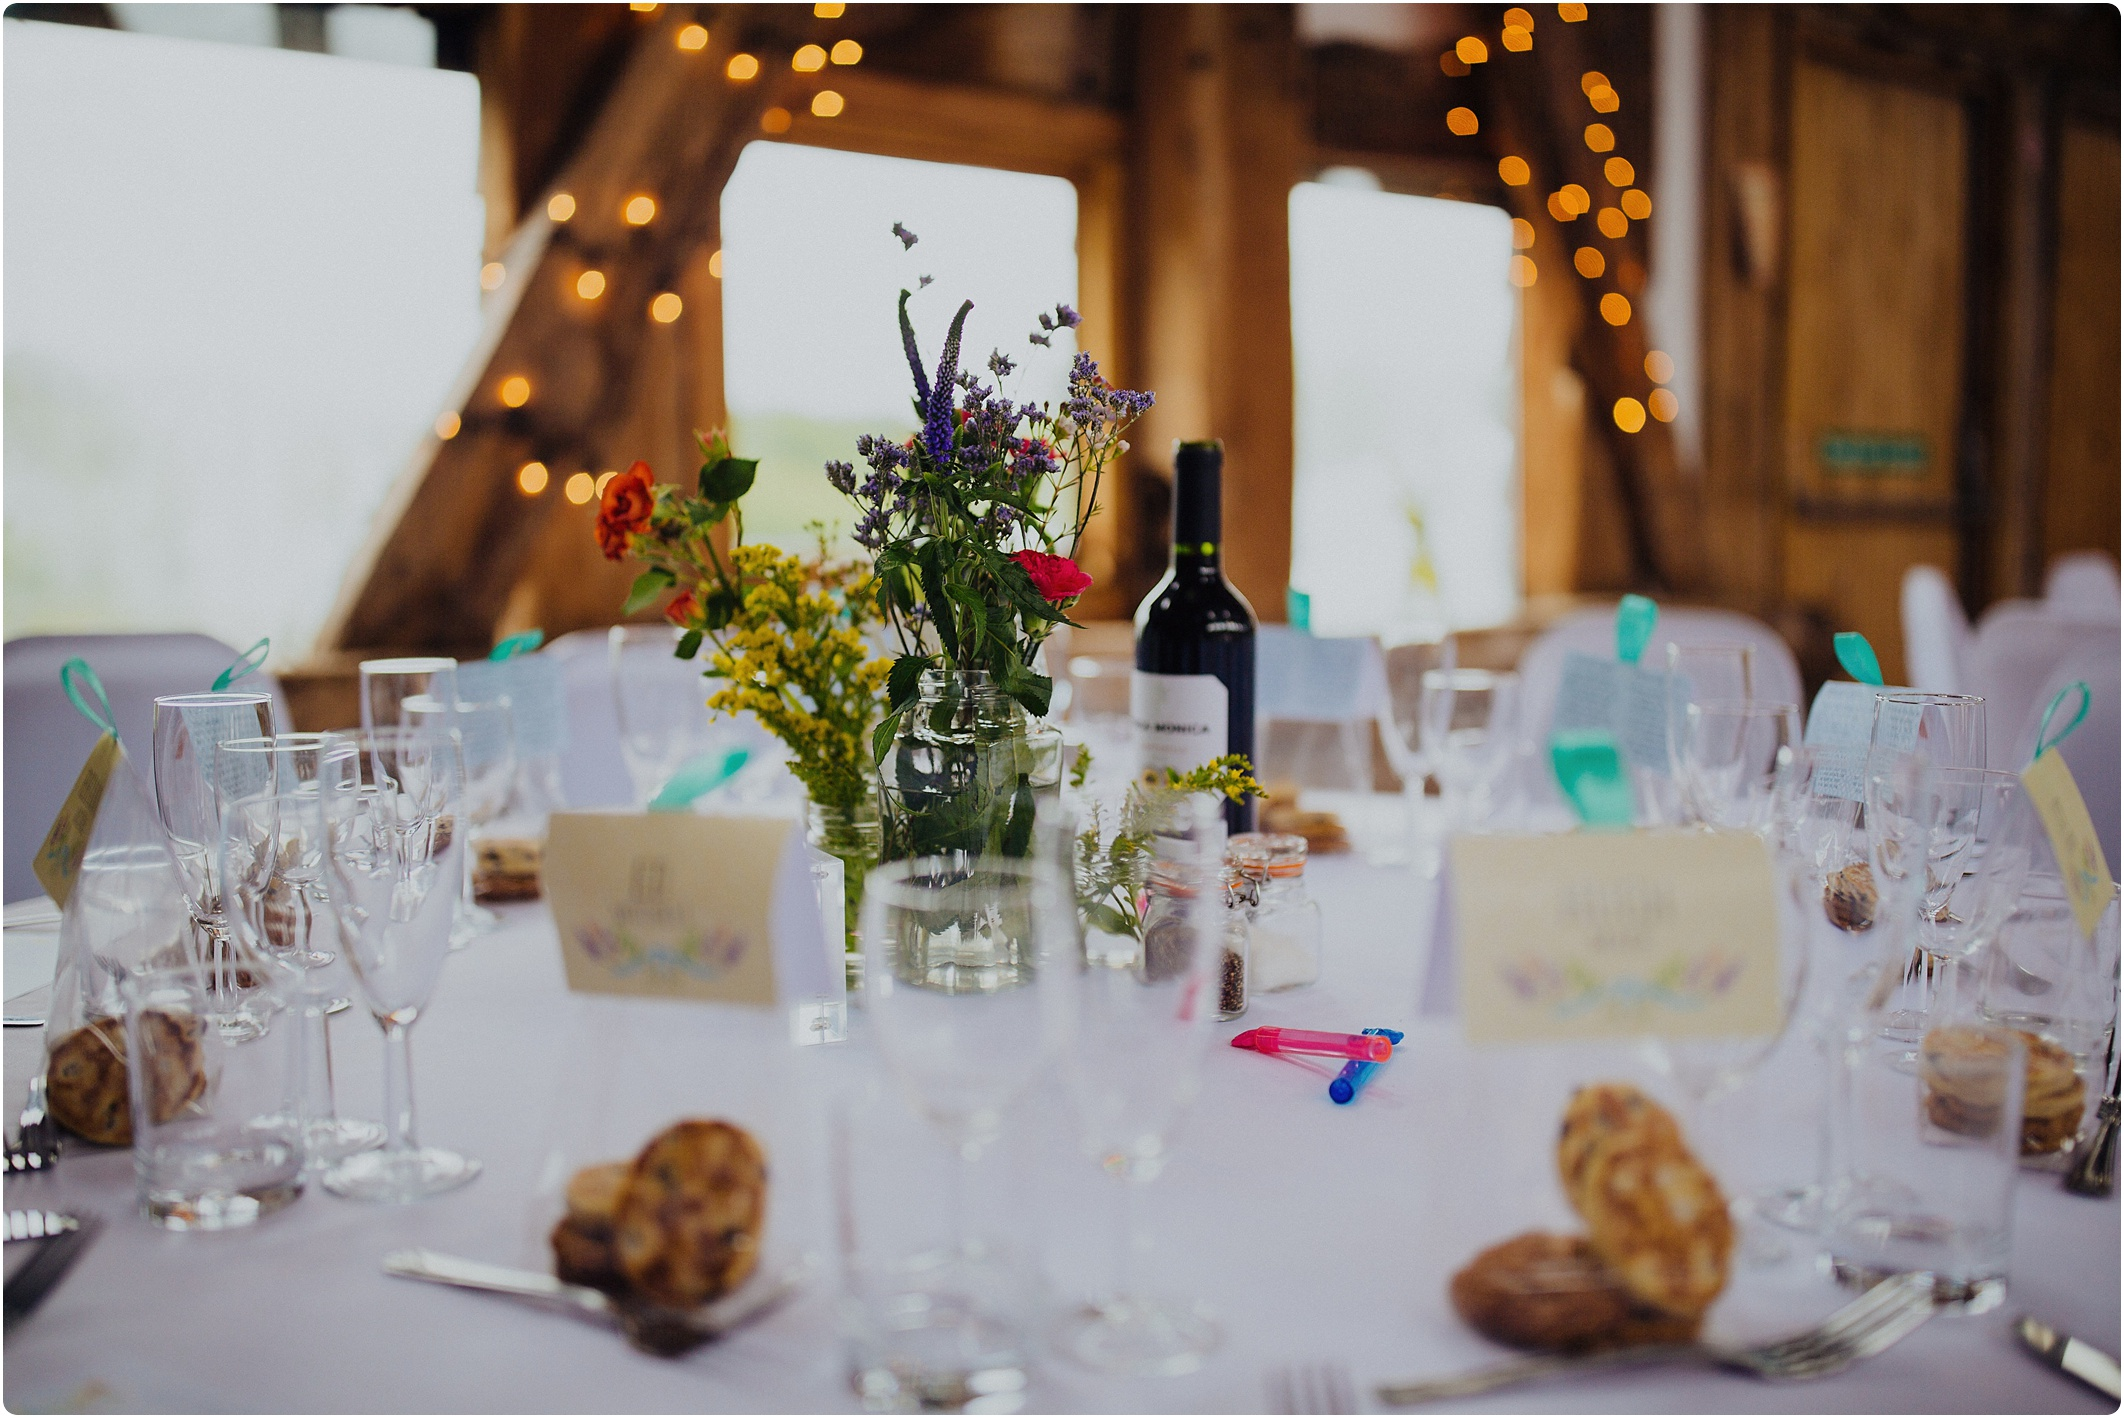 Treadam Barn Wedding table decoration